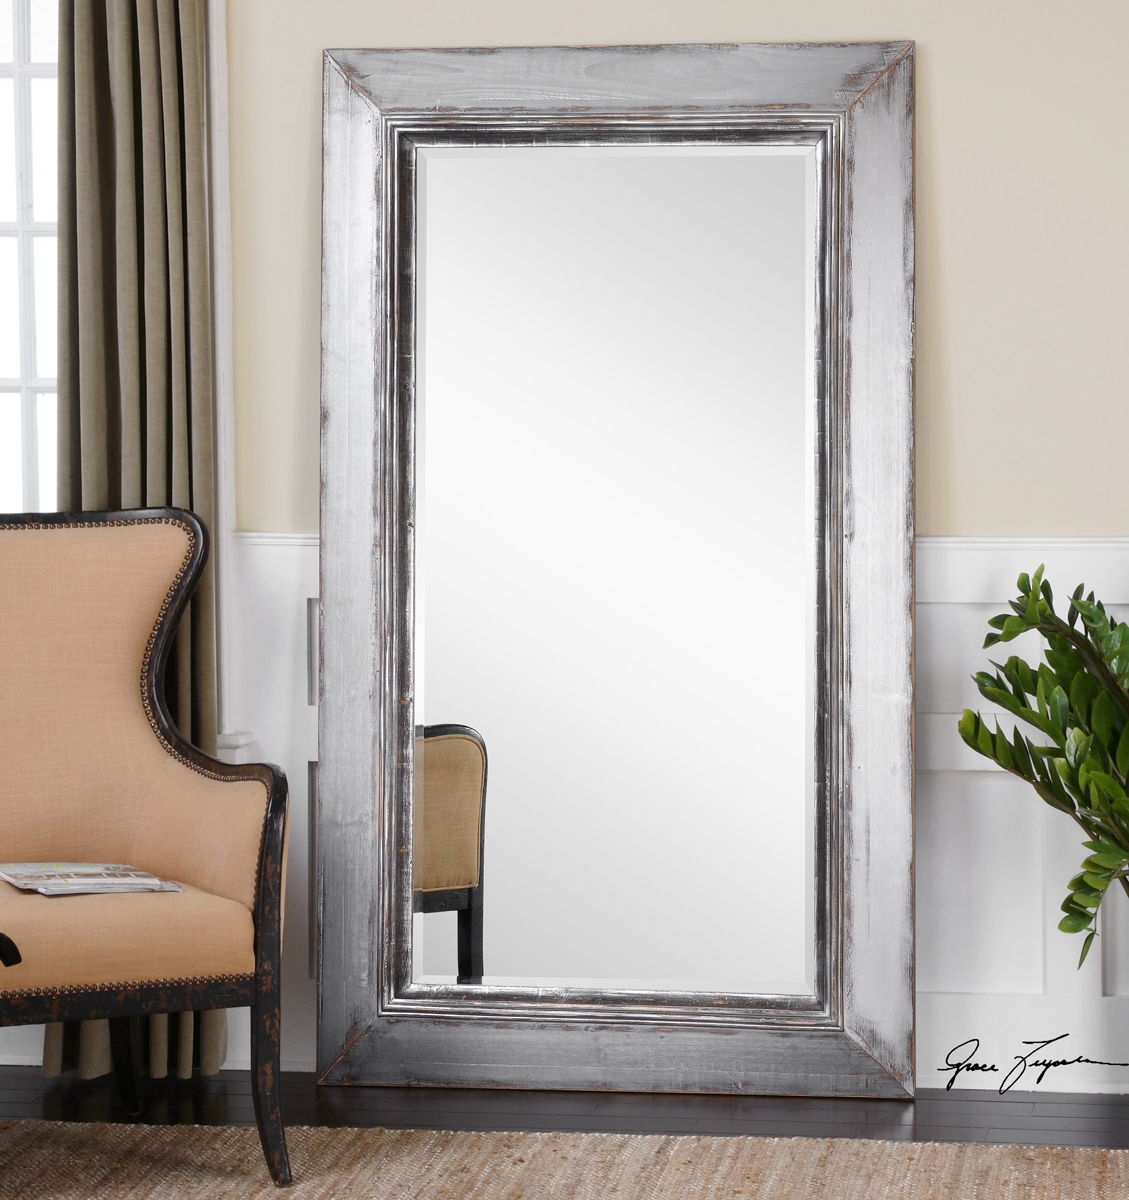 Standing Mirrors Lighting Fixtures Lights And Home Lighting With Regard To Standing Dressing Mirror (View 11 of 15)